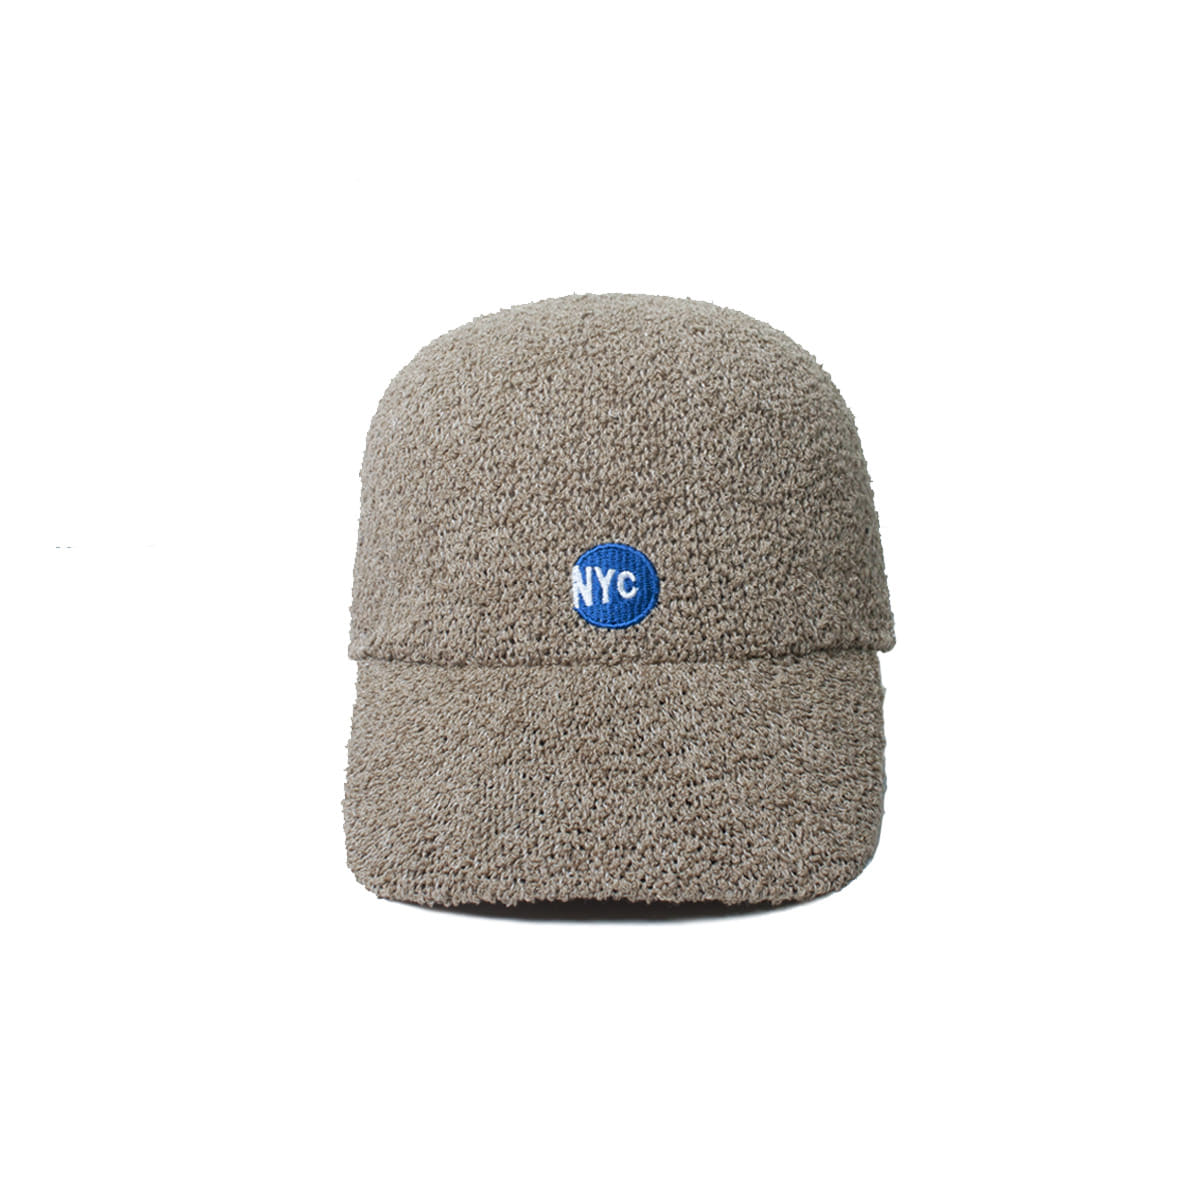 [INFILEDER DESIGN] NYC CAP 'BEIGE'